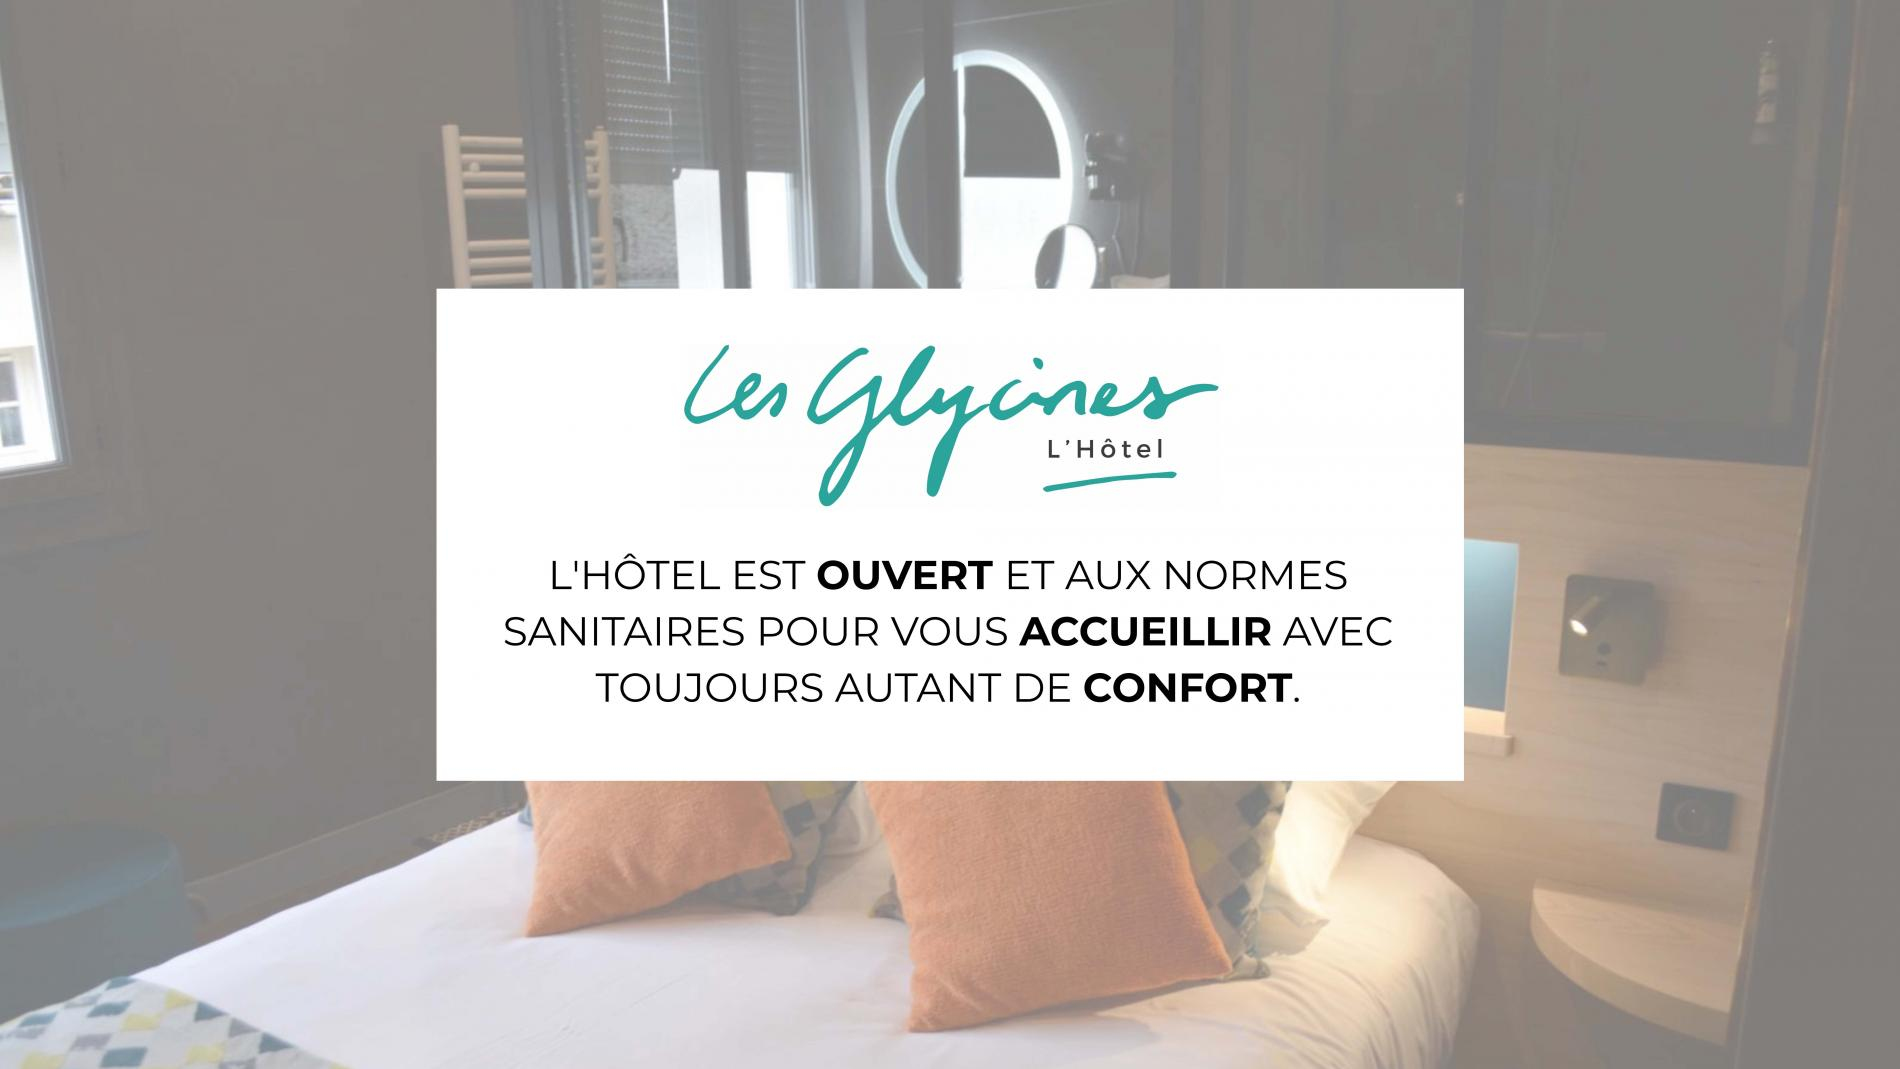 Bedrooms hotel near Niort, Les Glycines